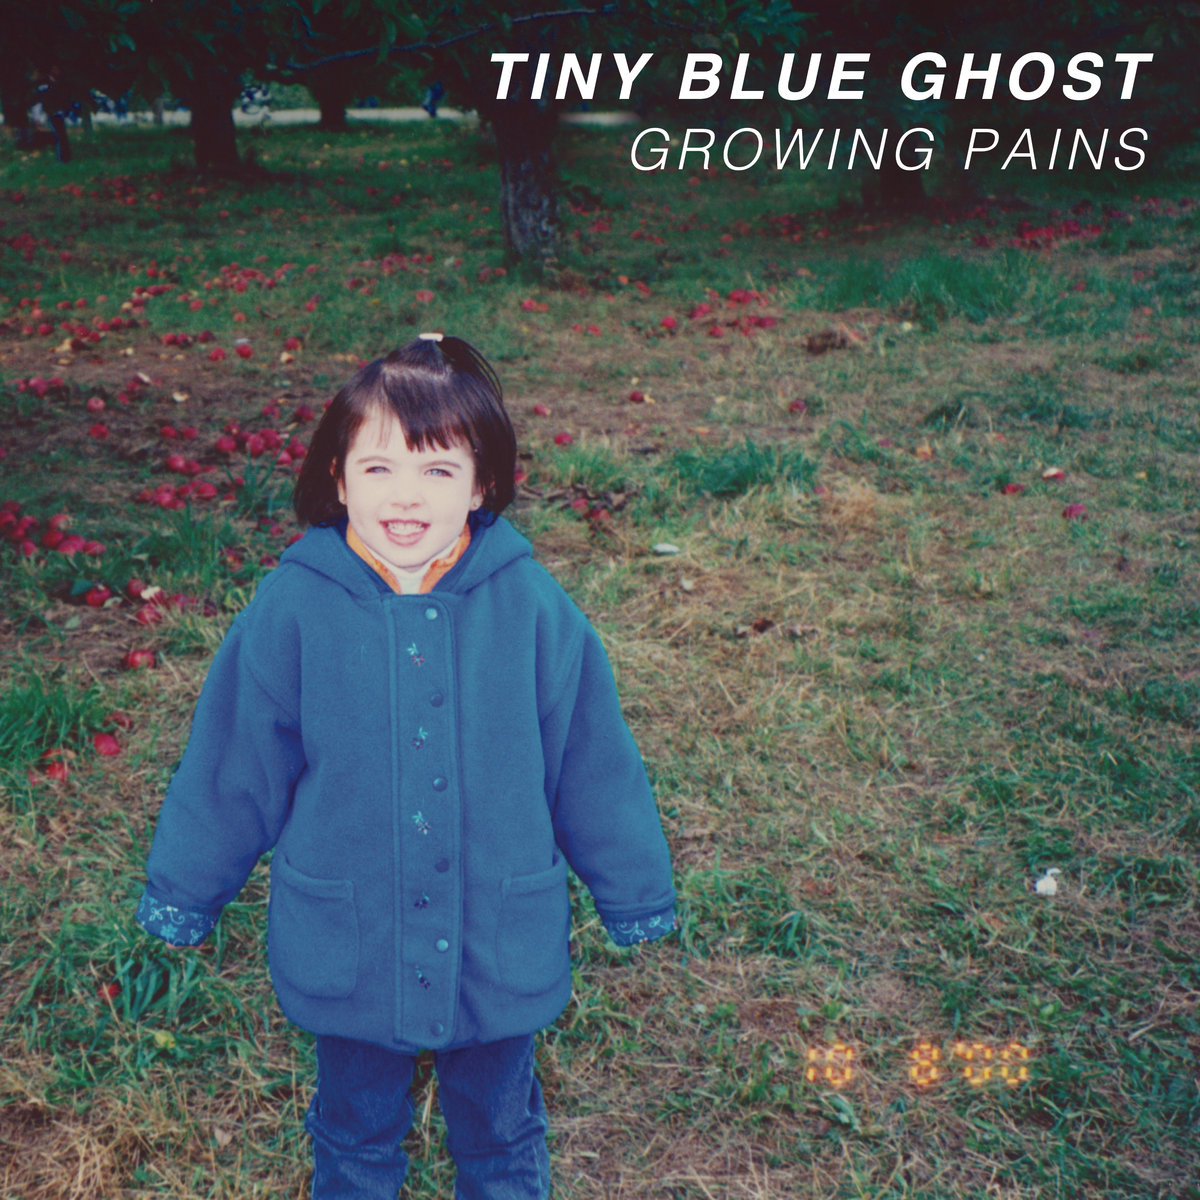 Growing Pains - Tiny Blue Ghost